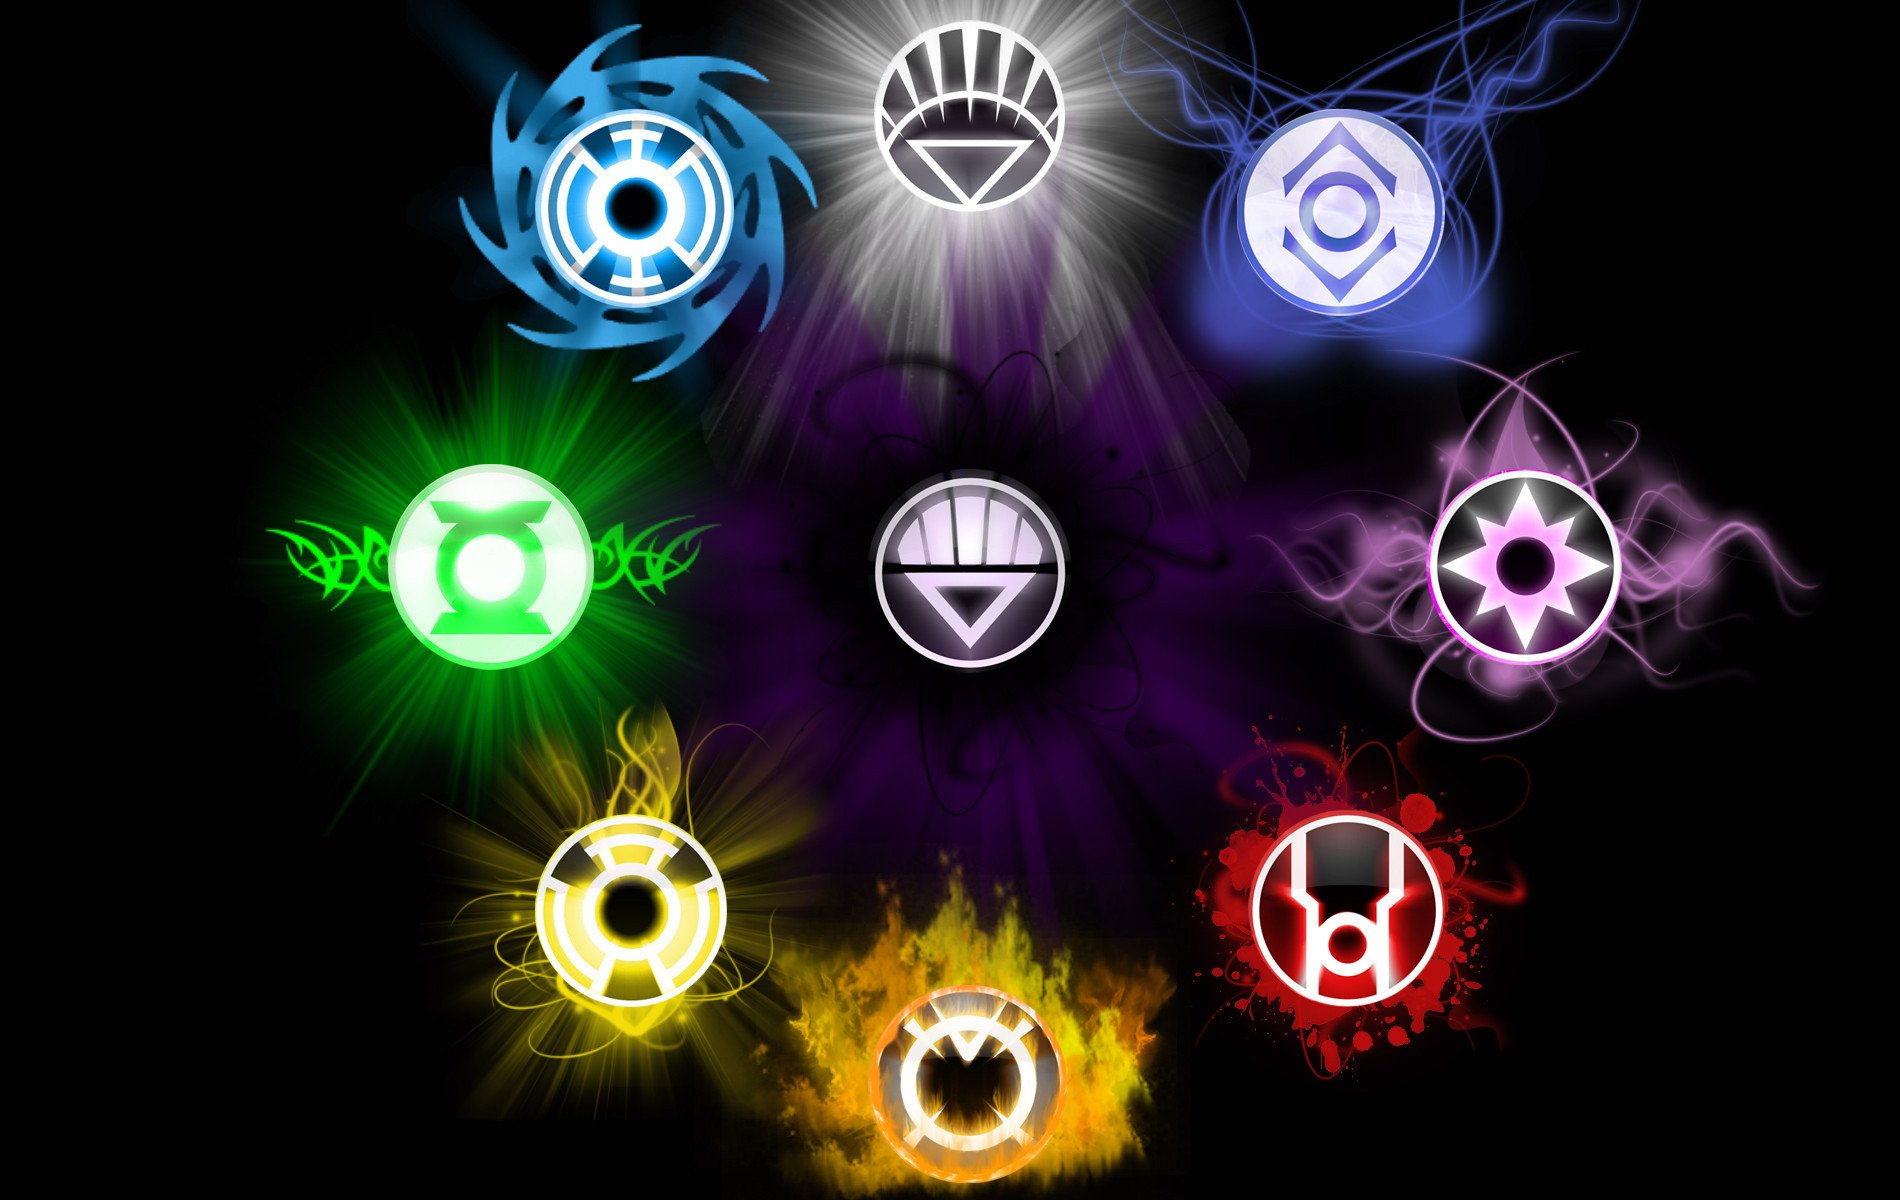 Yellow Lantern Black Lantern Blue Lantern Green Lantern Wallpaper 1900x1200